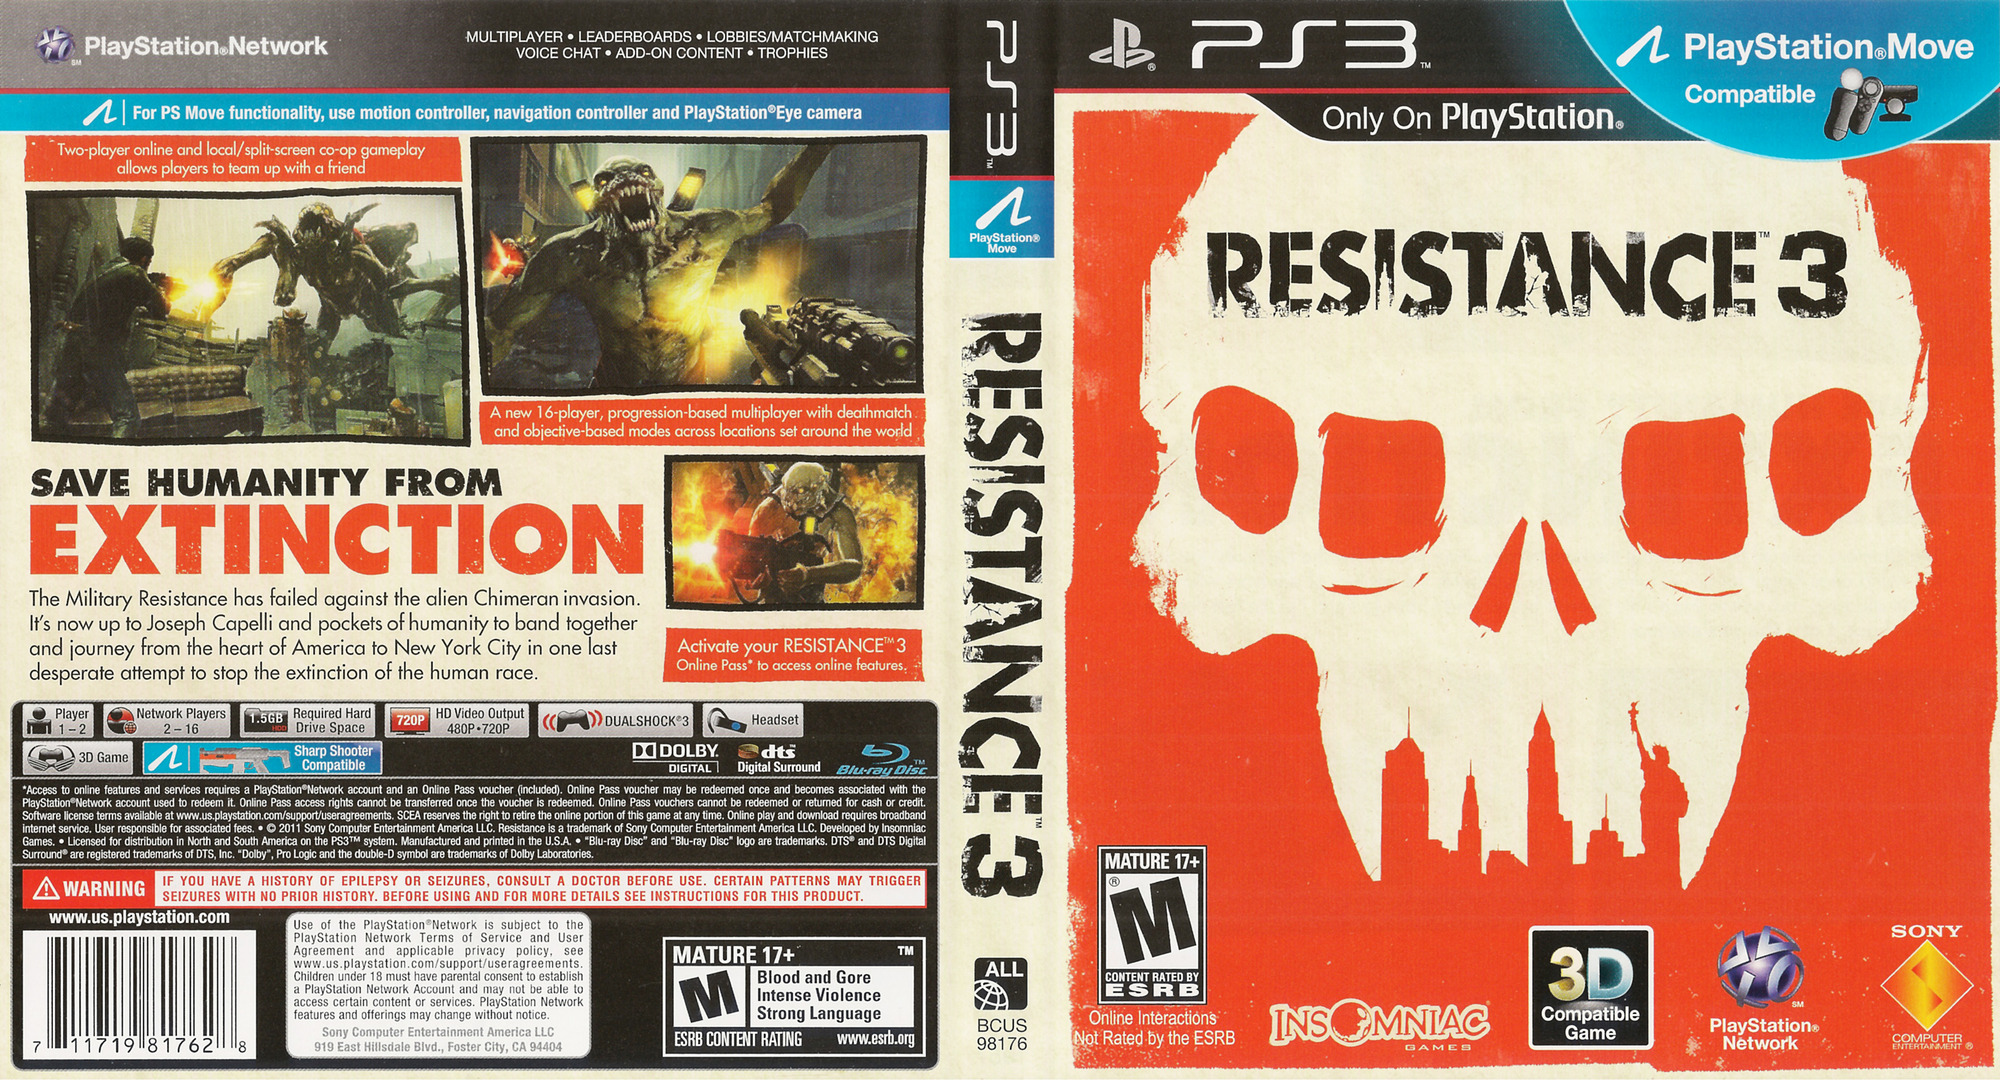 Resistance 3 (Doomsday Edition) PS3 coverfullHQ (BCUS98176)